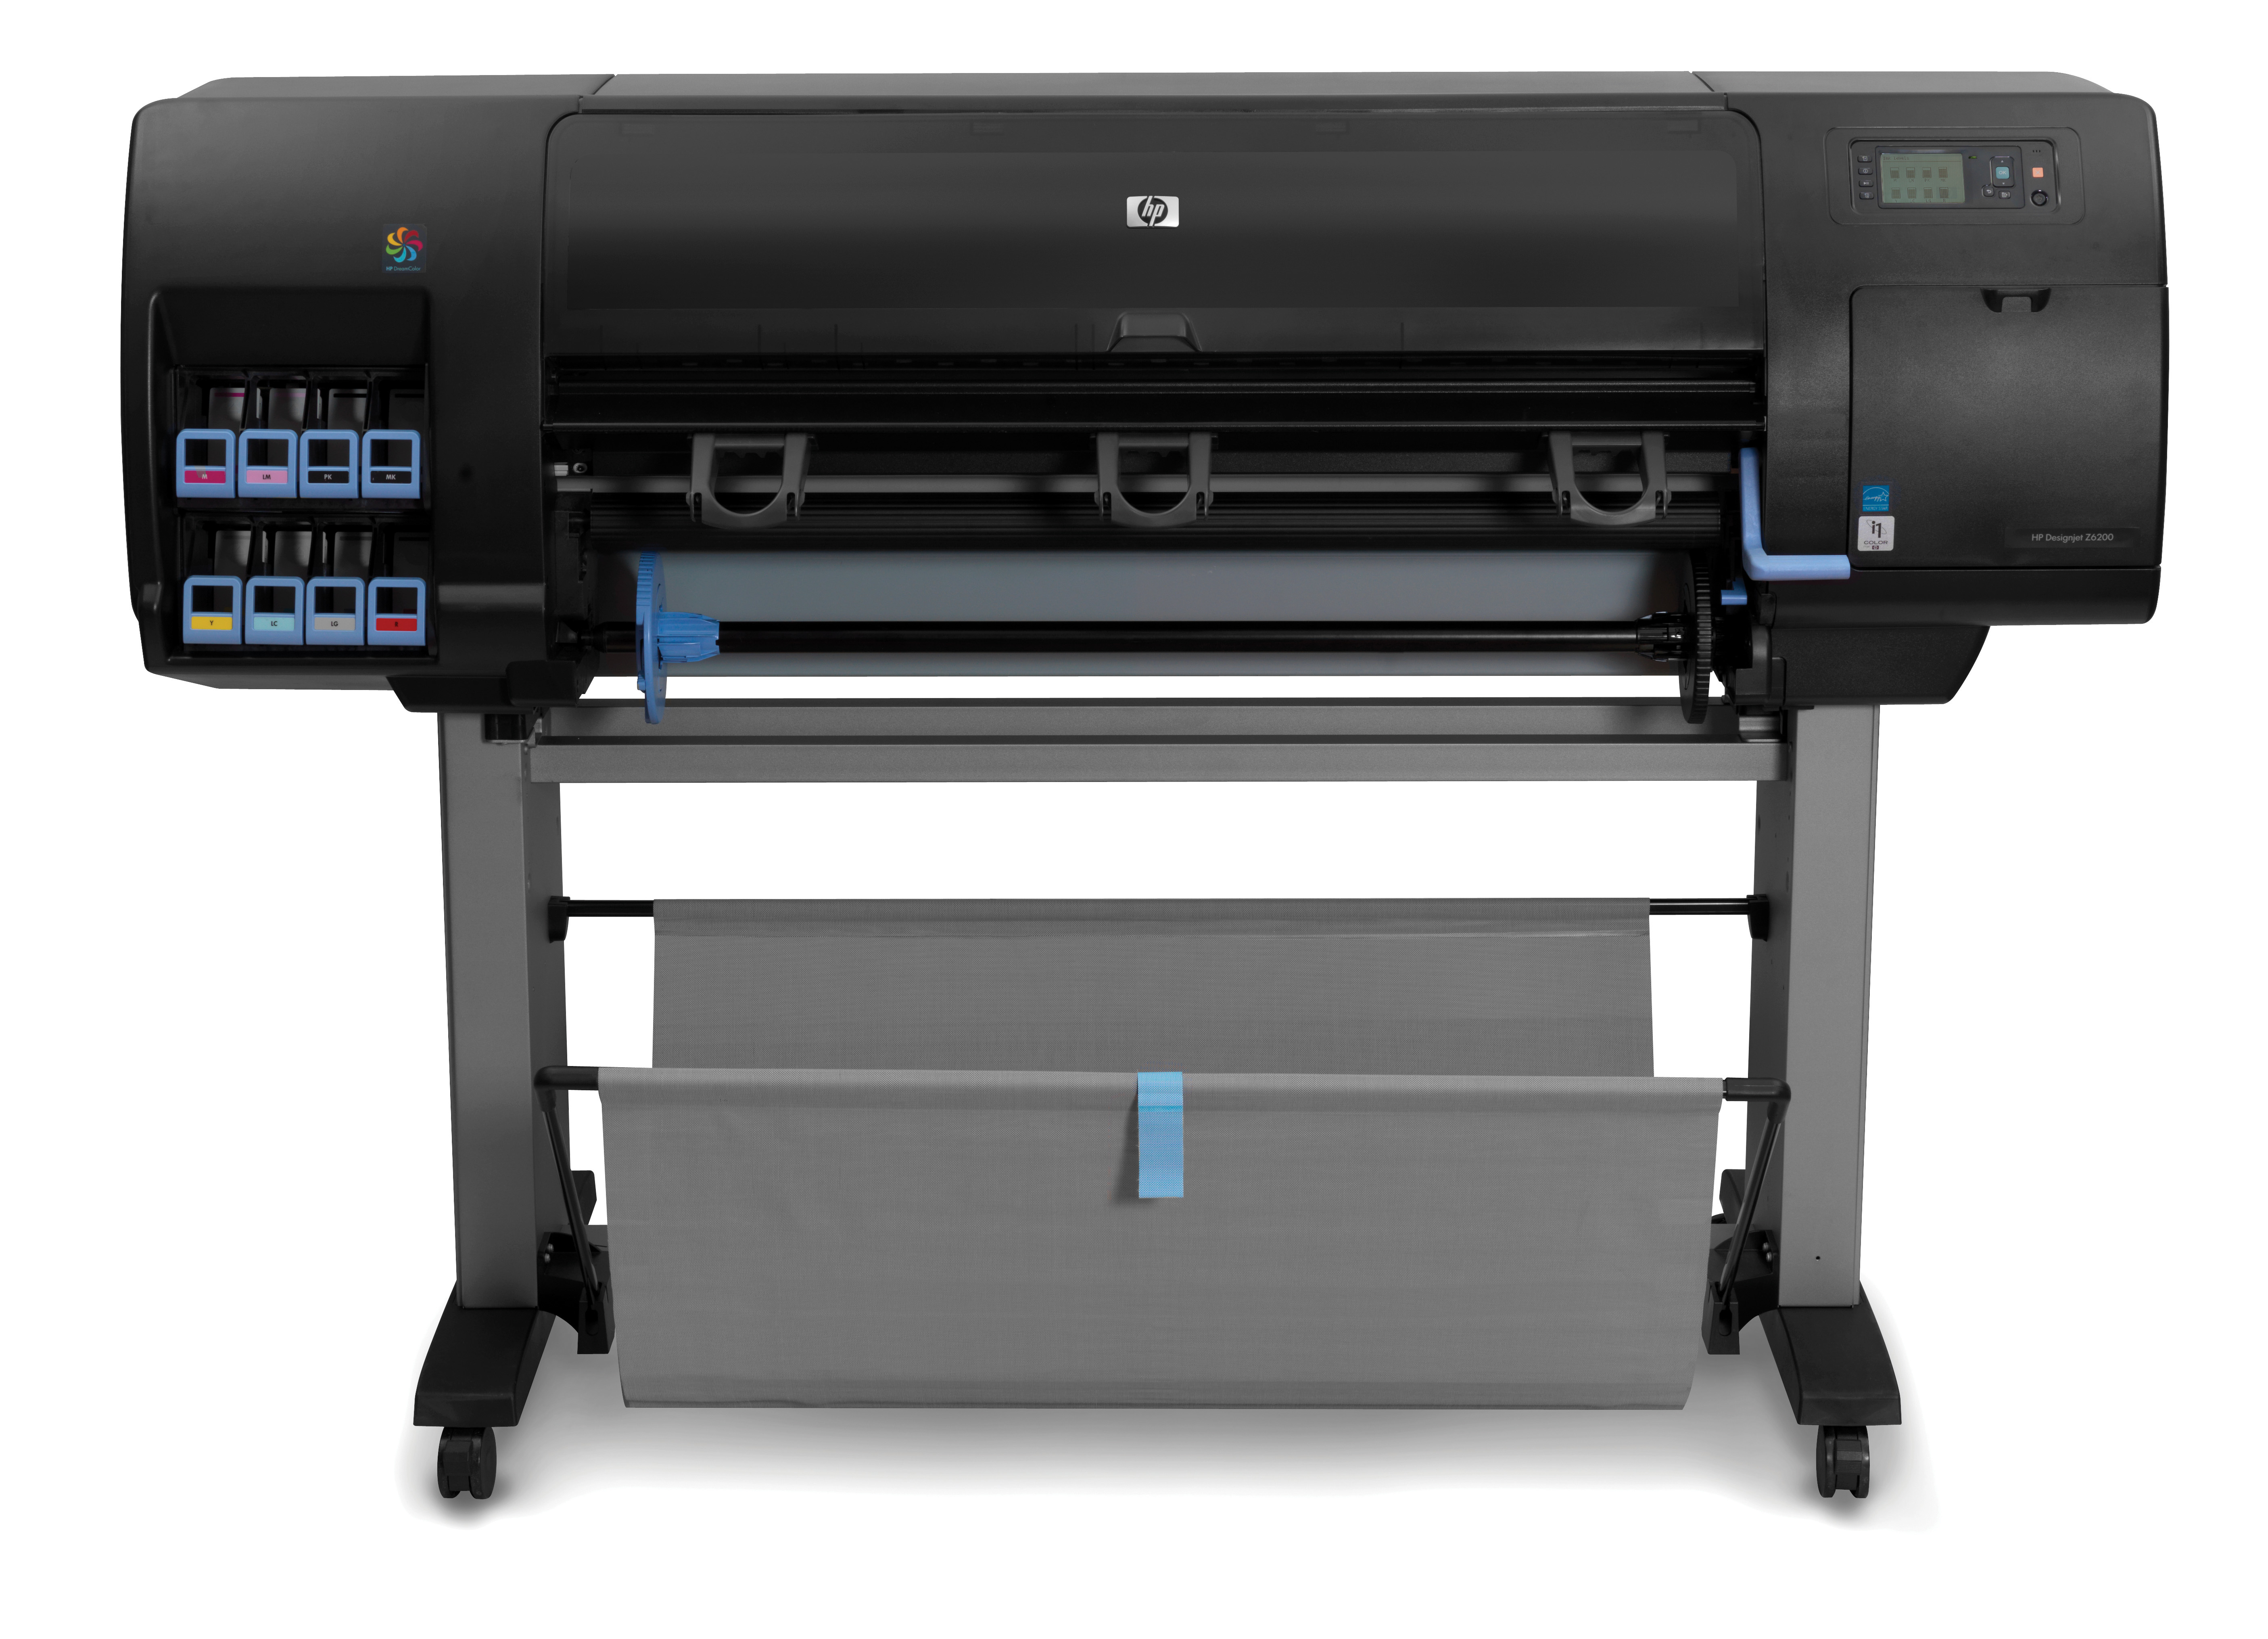 "CQ109A HP Designjet Z6200 A0 42"" Printer - Refurbished"